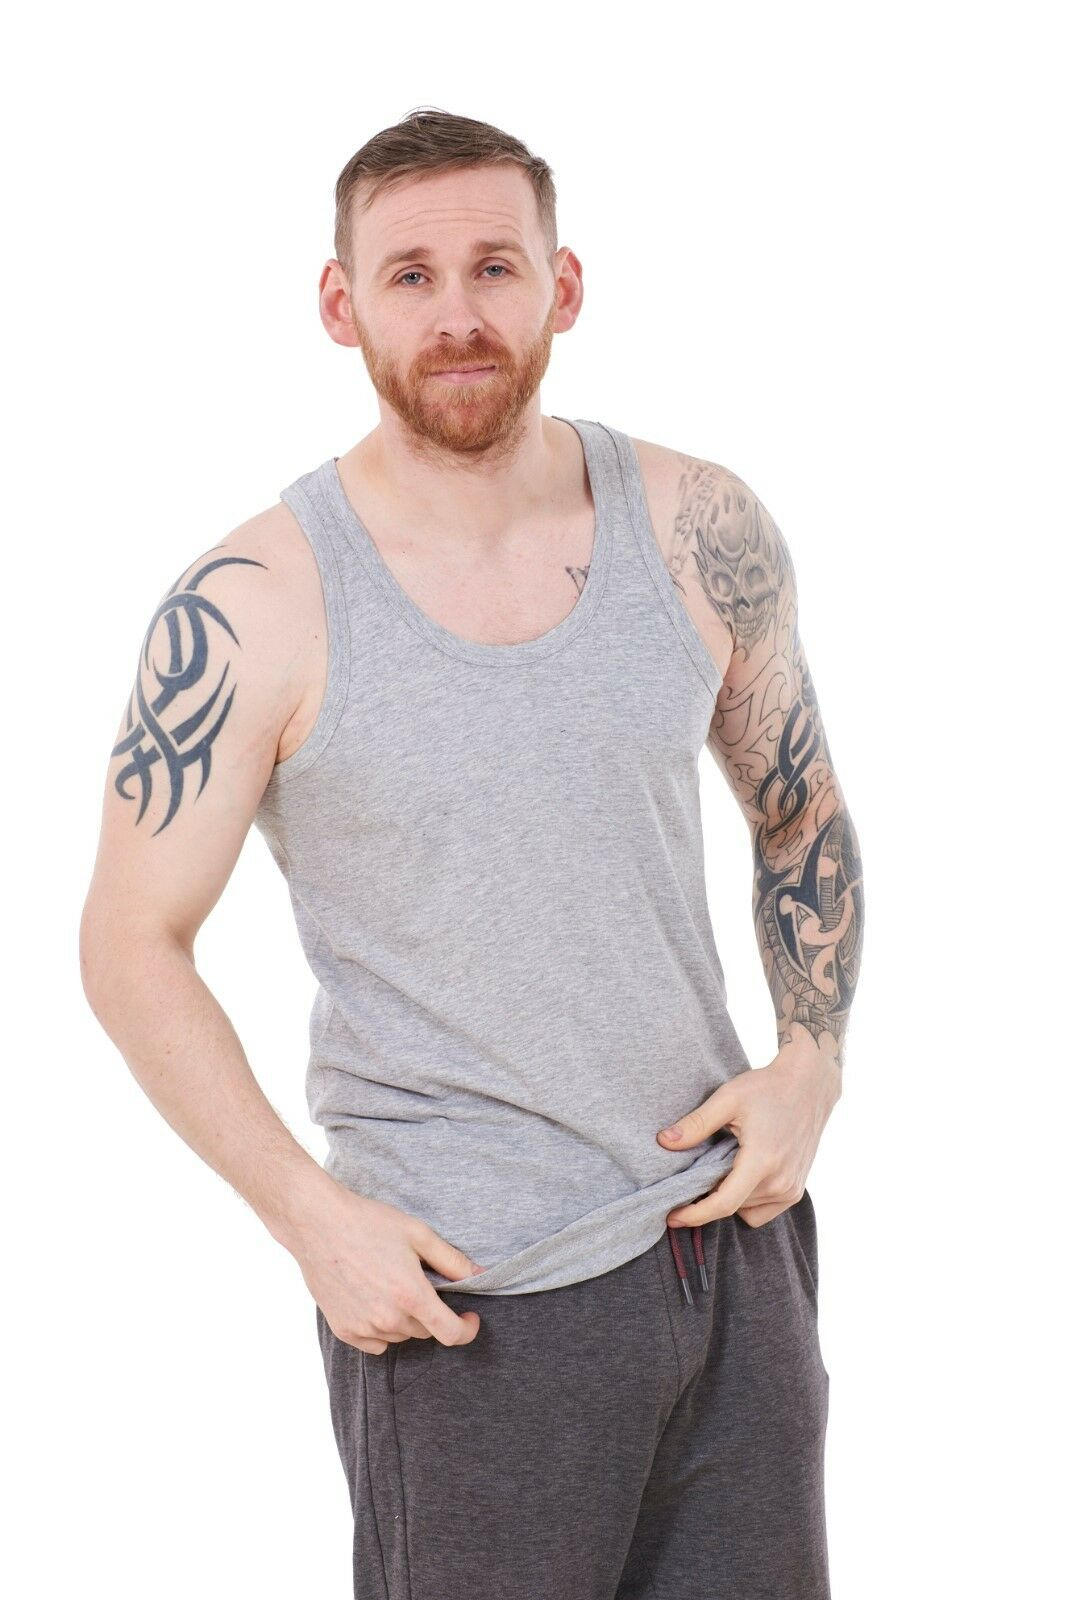 Mens Plain Vests 2-Pack Fitted Summer Training Gym Tops T-Shirts Tanks M to 2XL